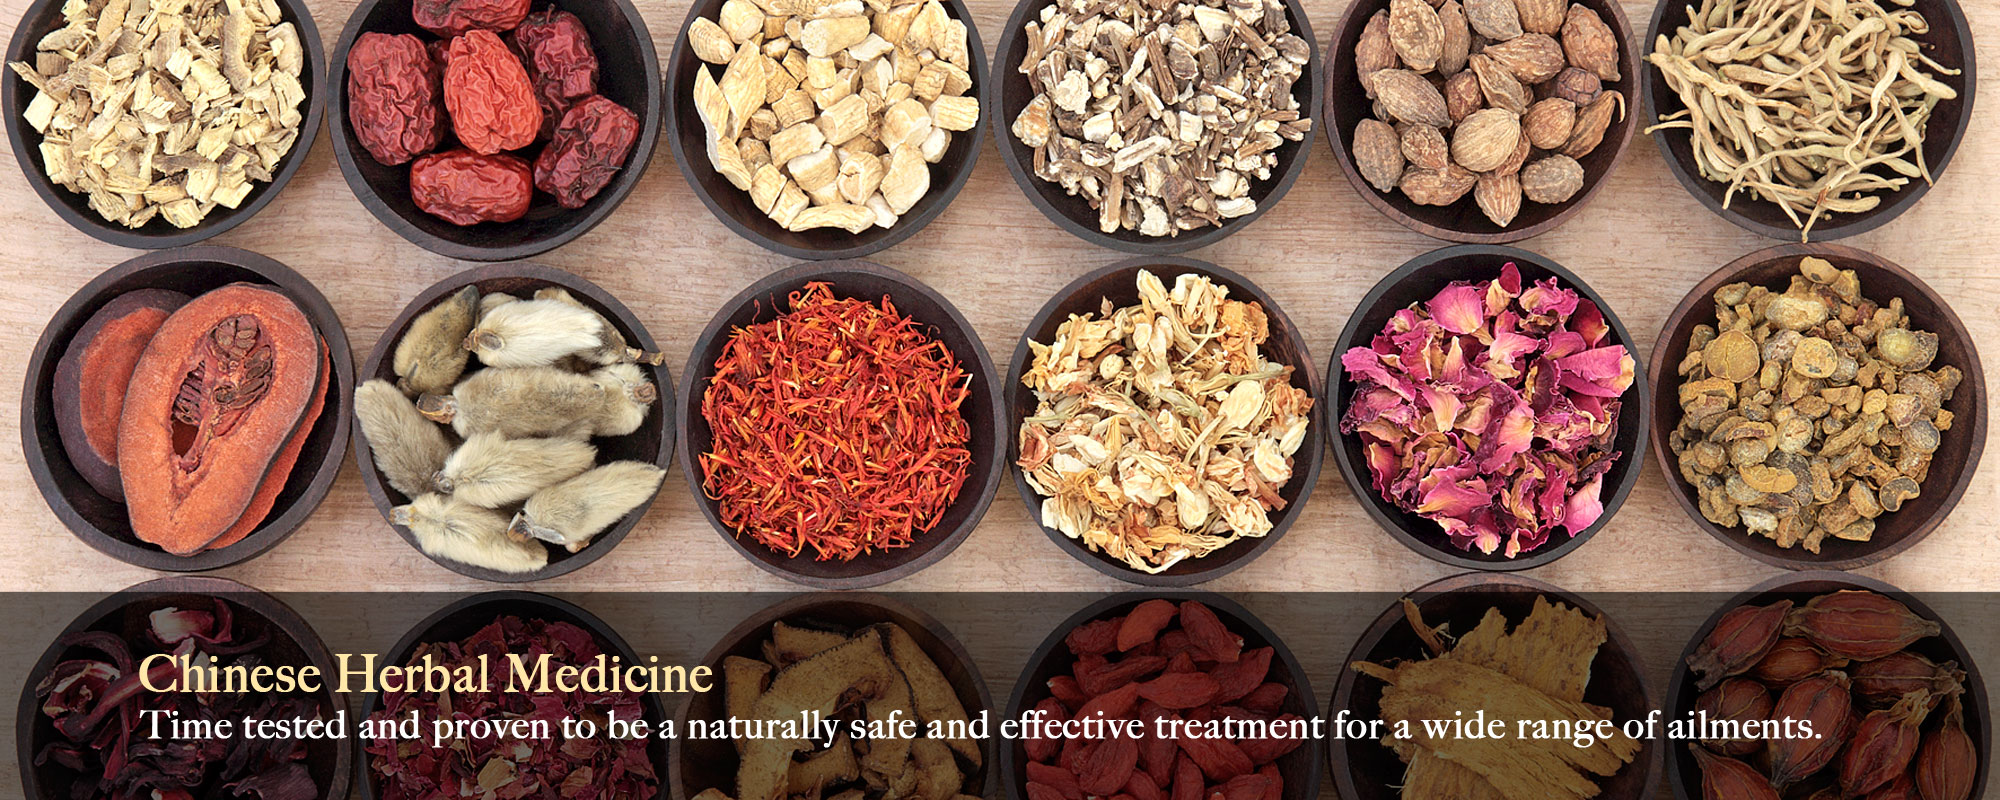 Chinese Herbal Medicine ... A Completely Natural, Powerful, And Effective Form Of Medicine